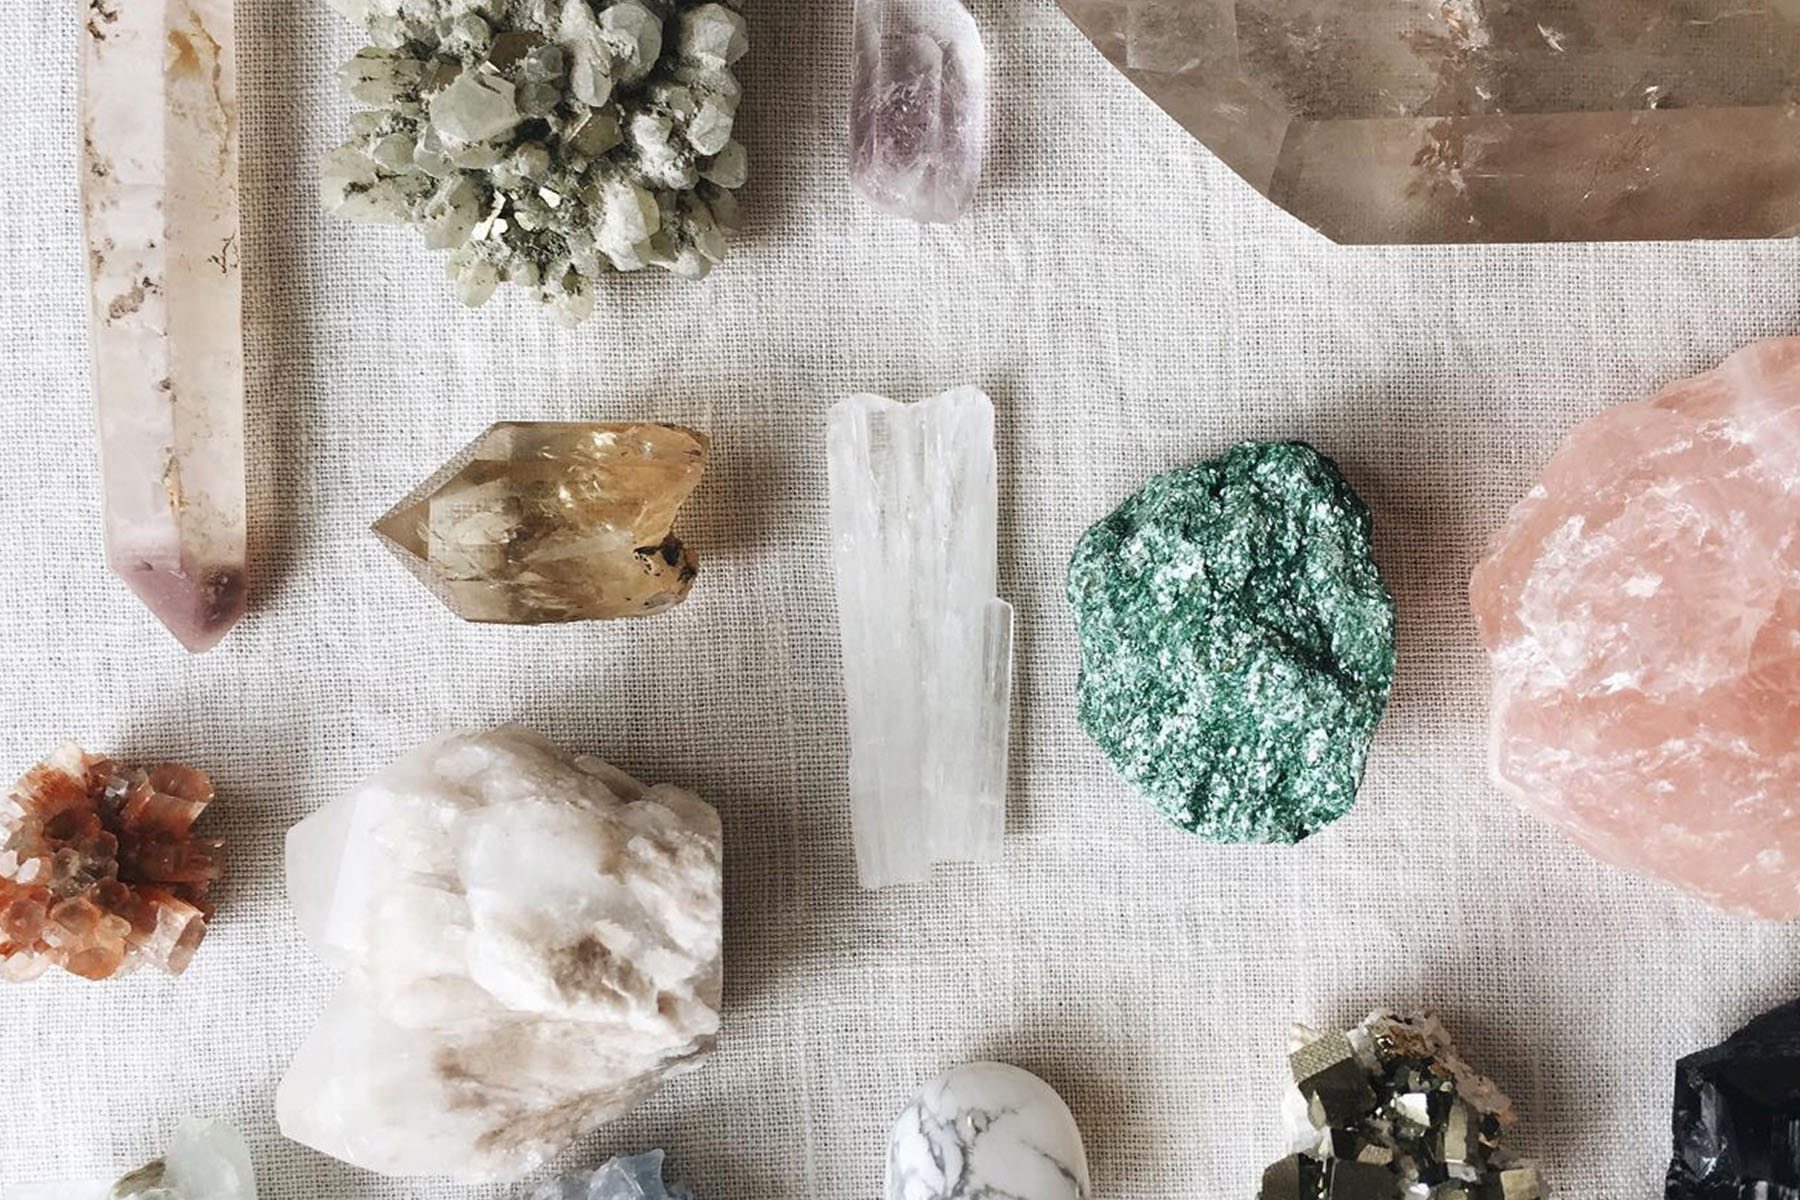 How The Right Crystal Can Make or Break Your Sex Life